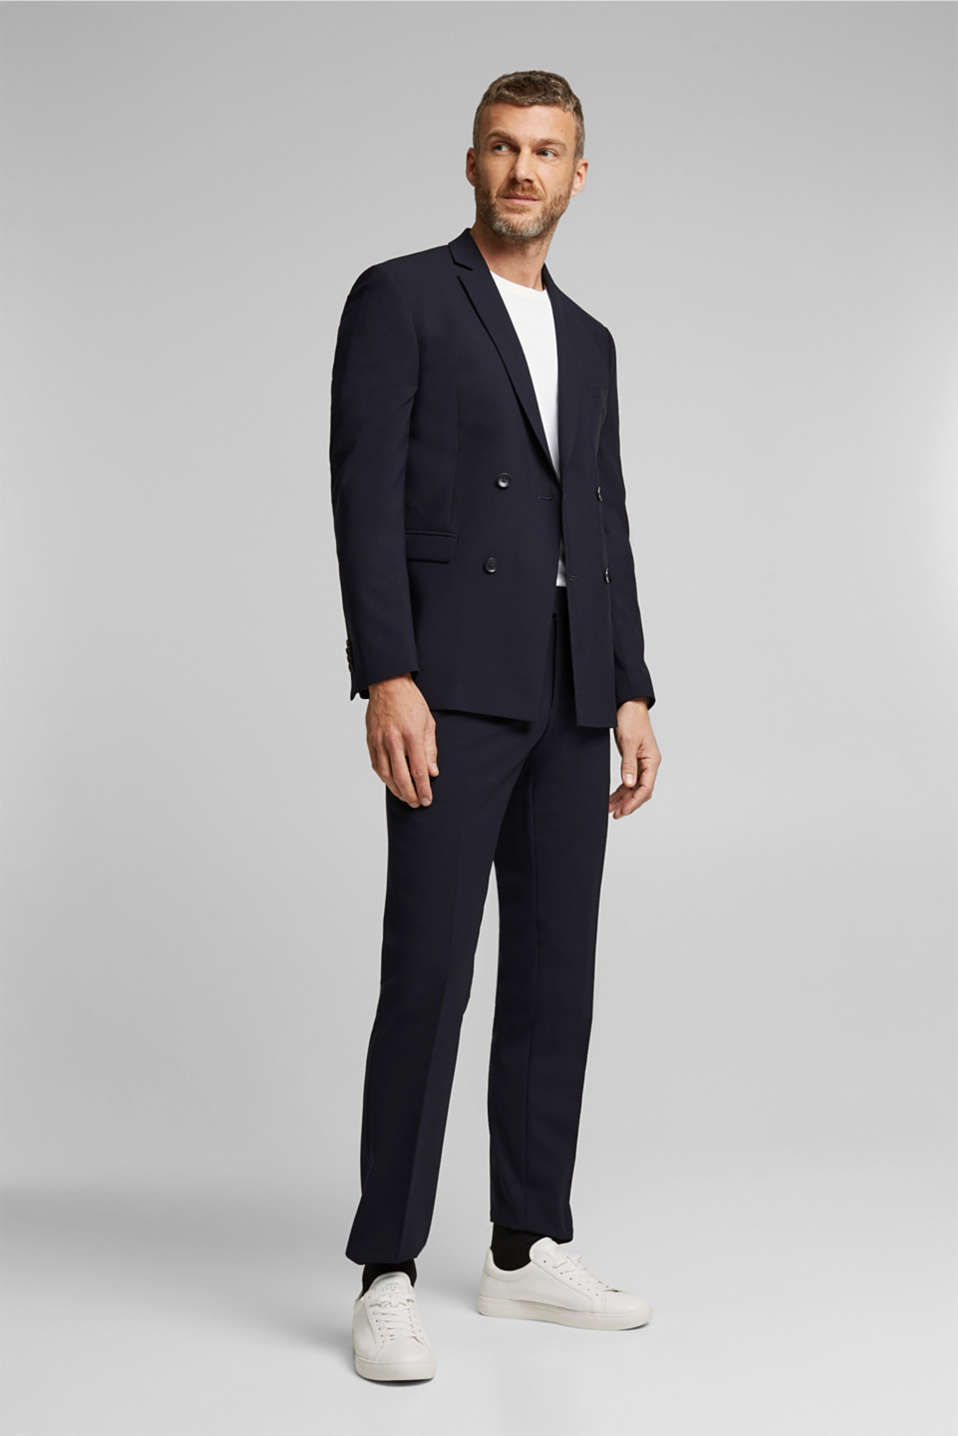 ACTIVE GRID mix + match: Trousers, DARK BLUE, detail image number 2